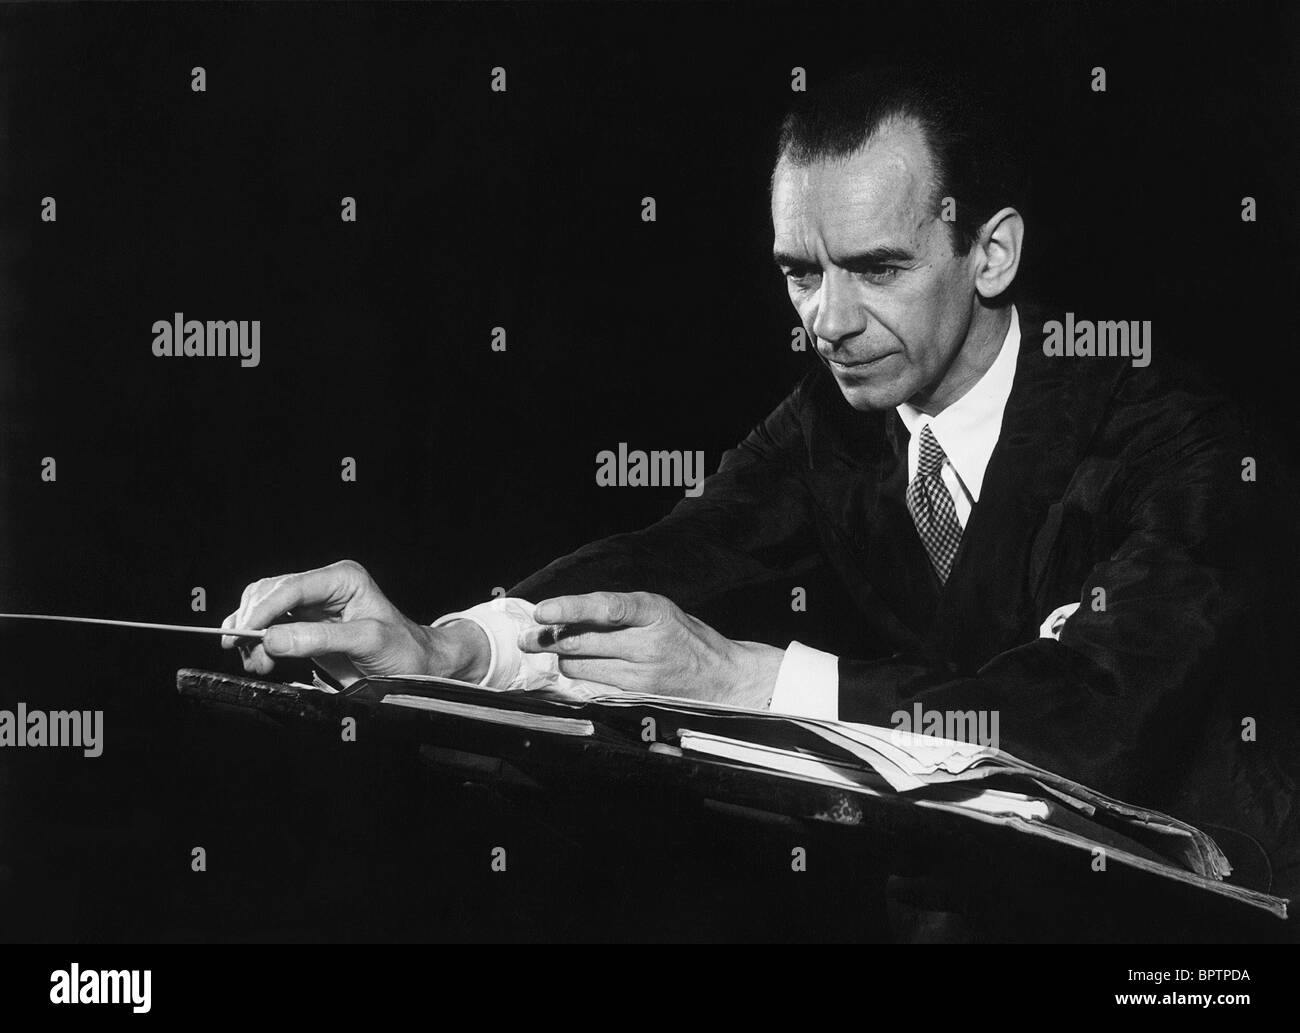 SIR MALCOLM SARGENT COMPOSER & MUSICIAN (1947) - Stock Image